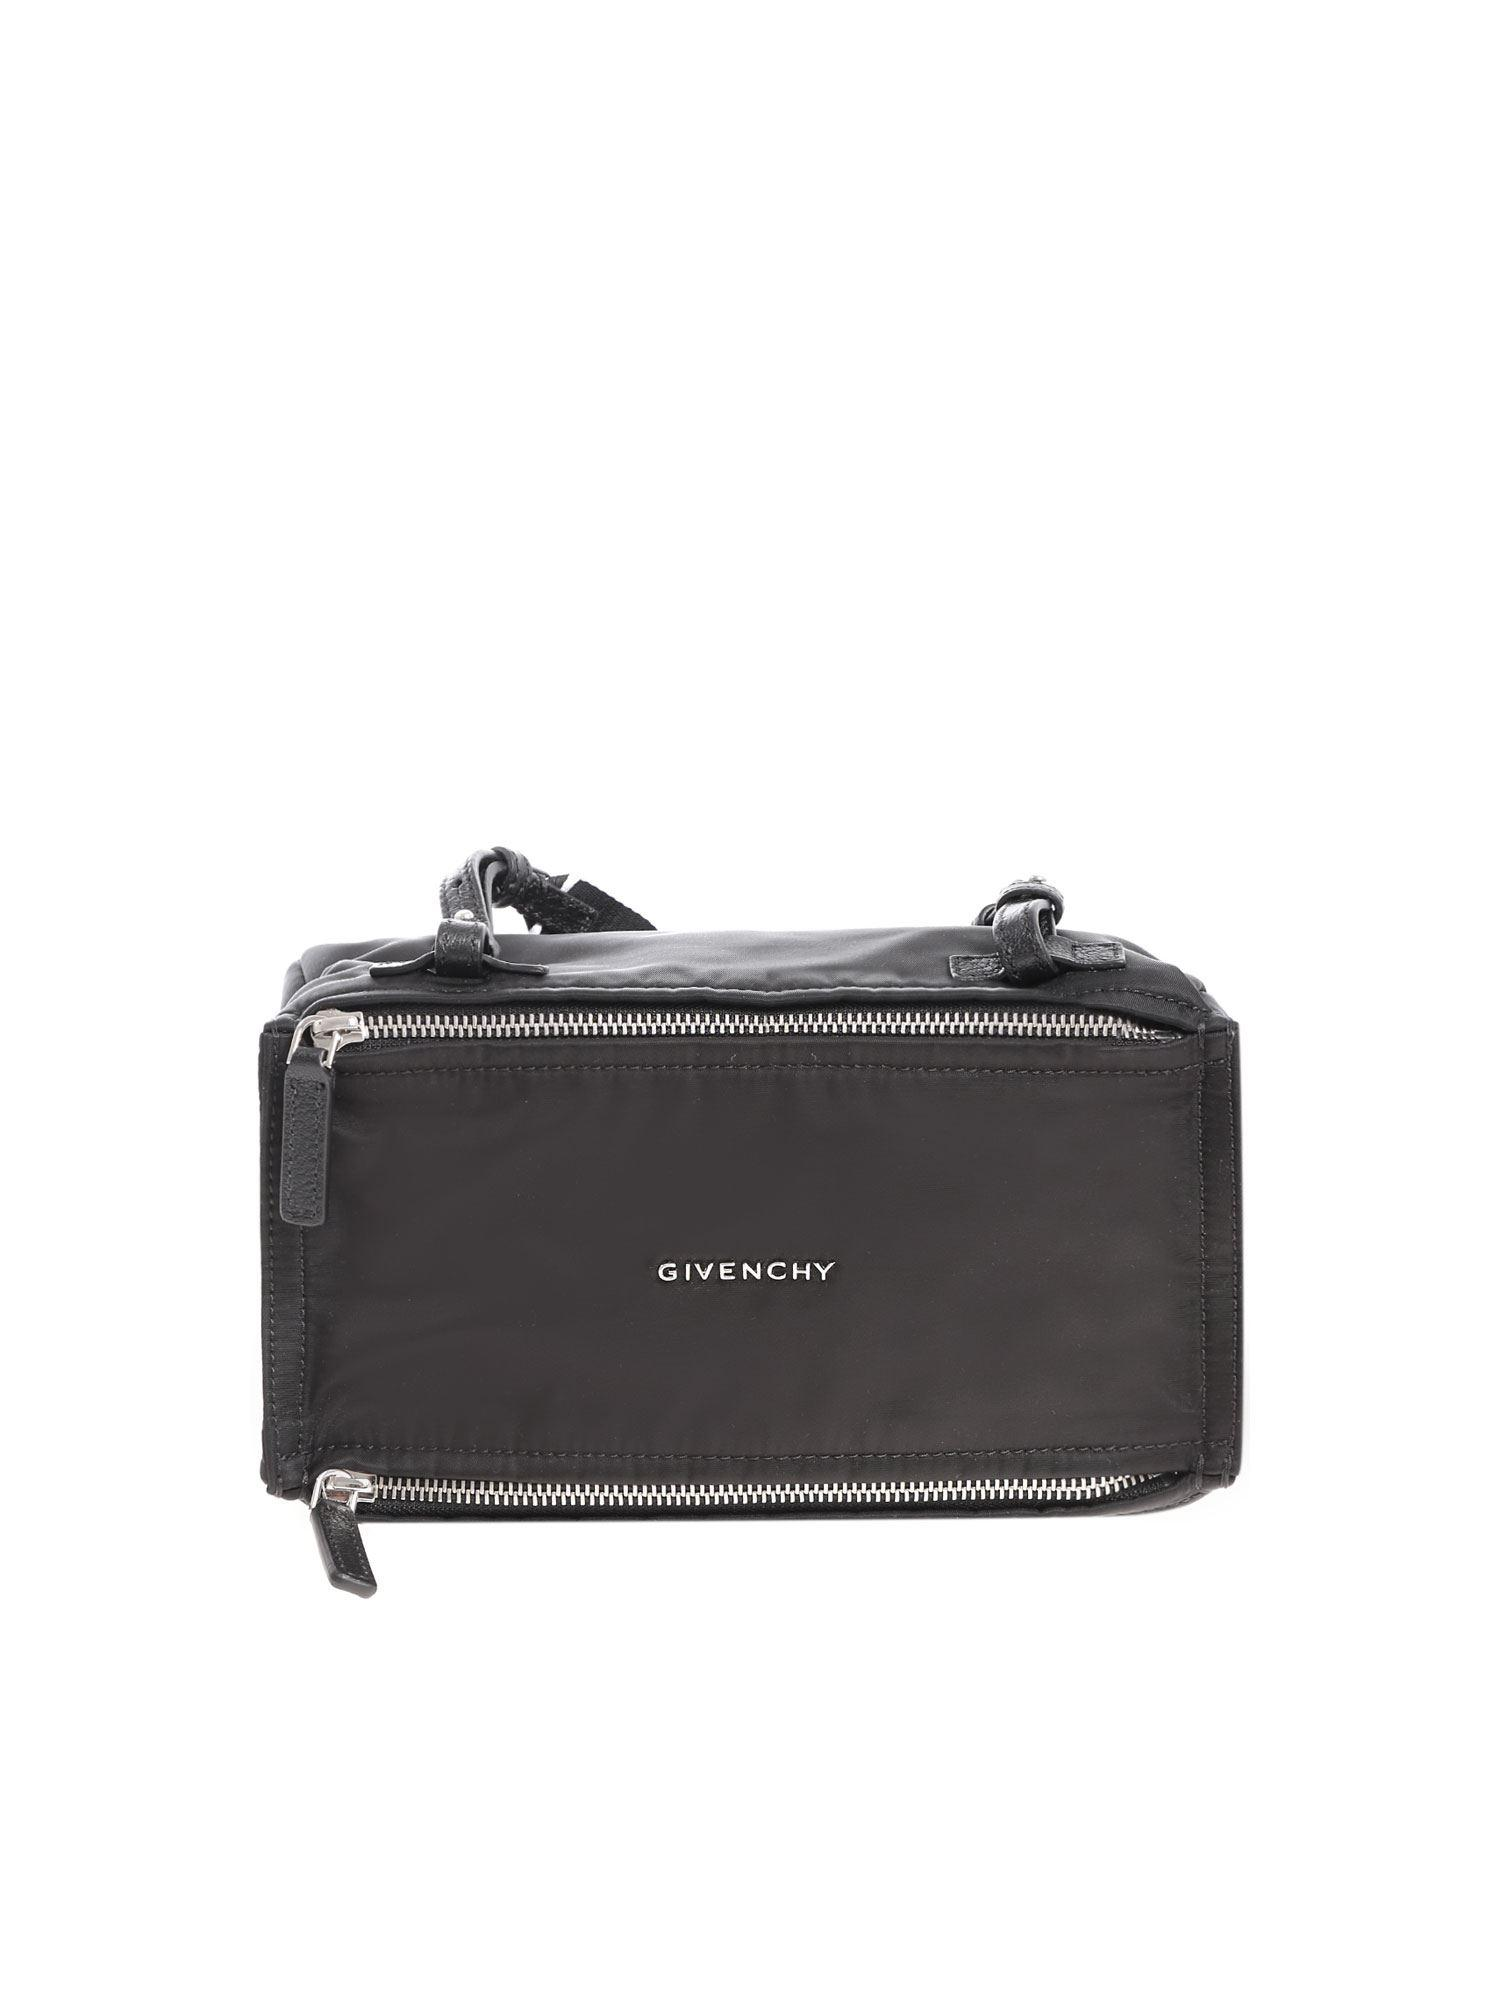 2ed07891e6 Givenchy - Black Pandora Mini Bag - Lyst. View fullscreen